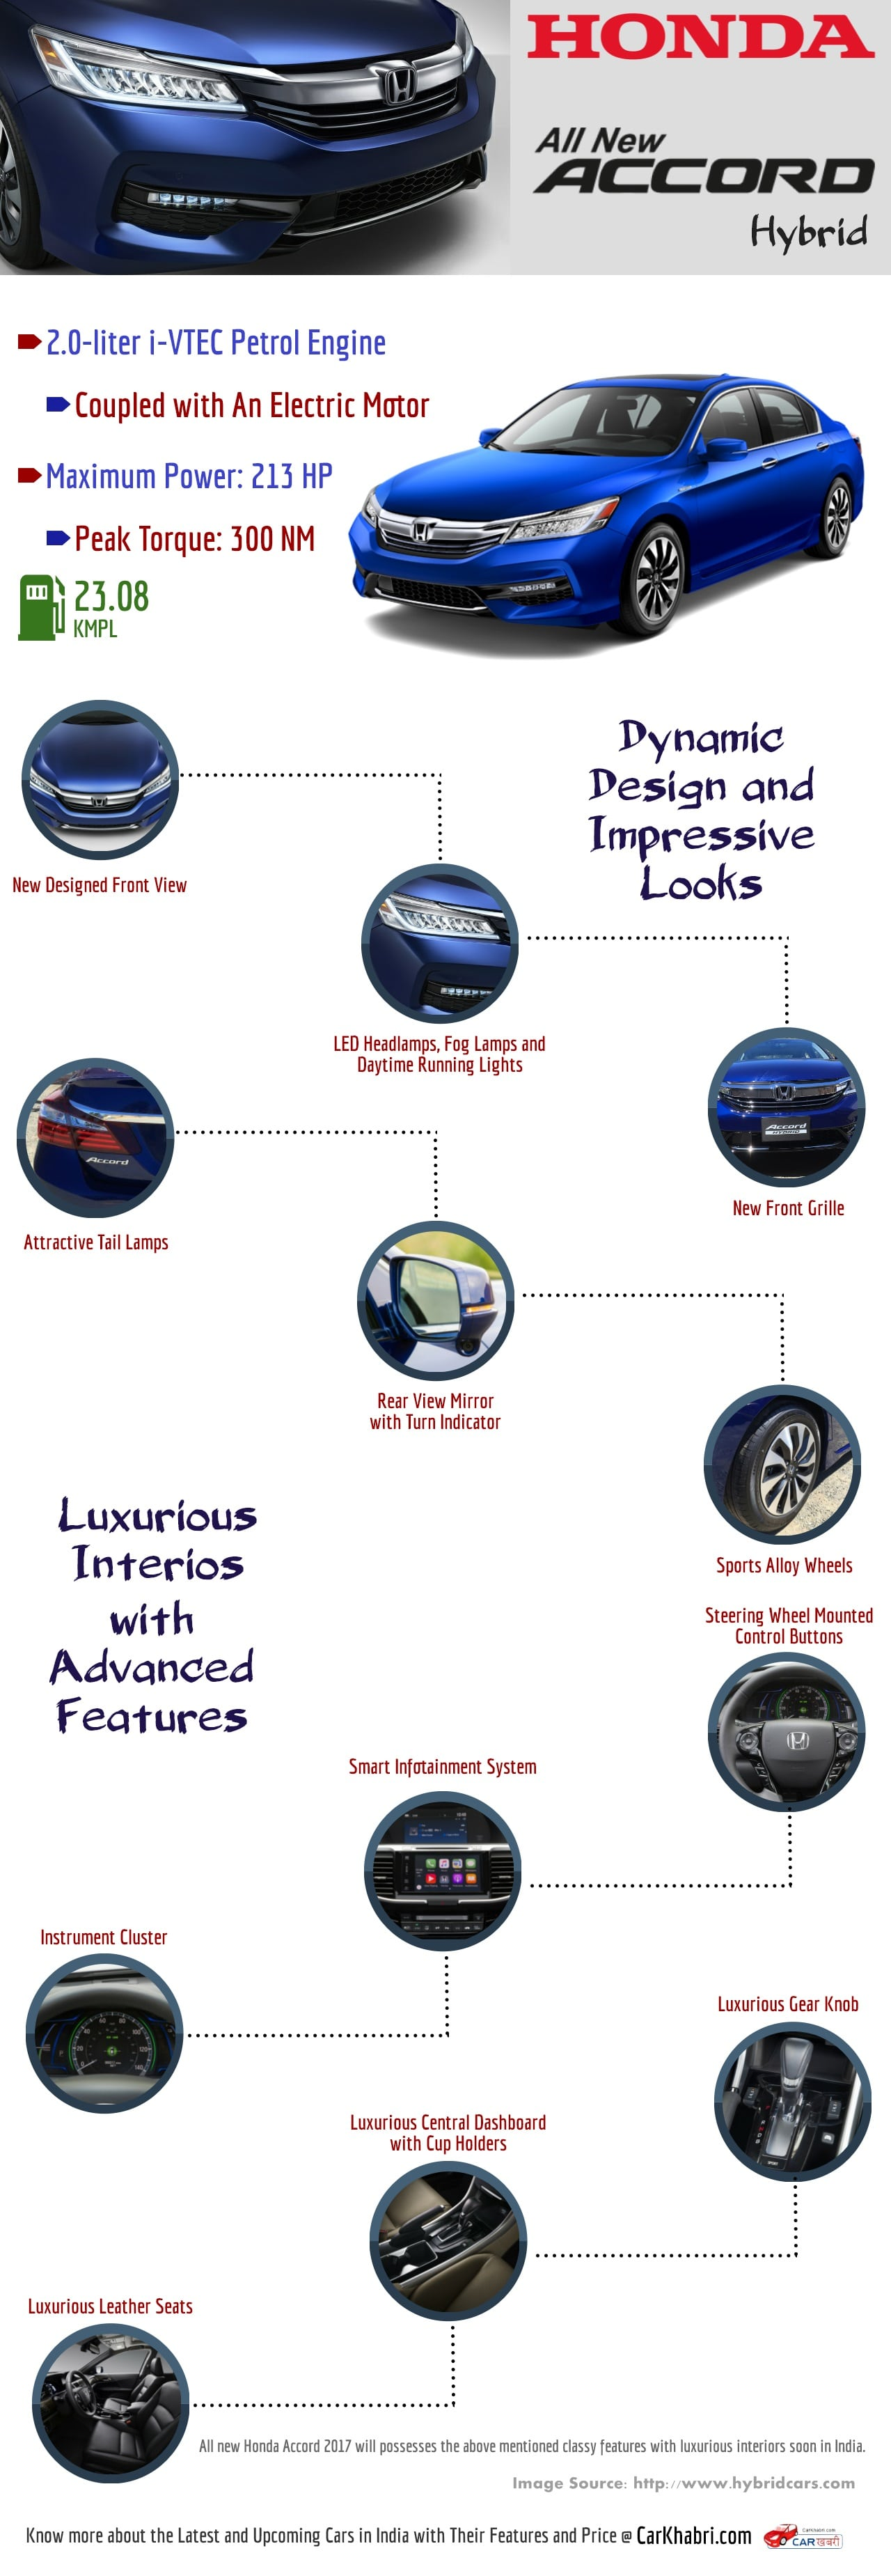 Infographic: 2017 Honda Accord Hybrid